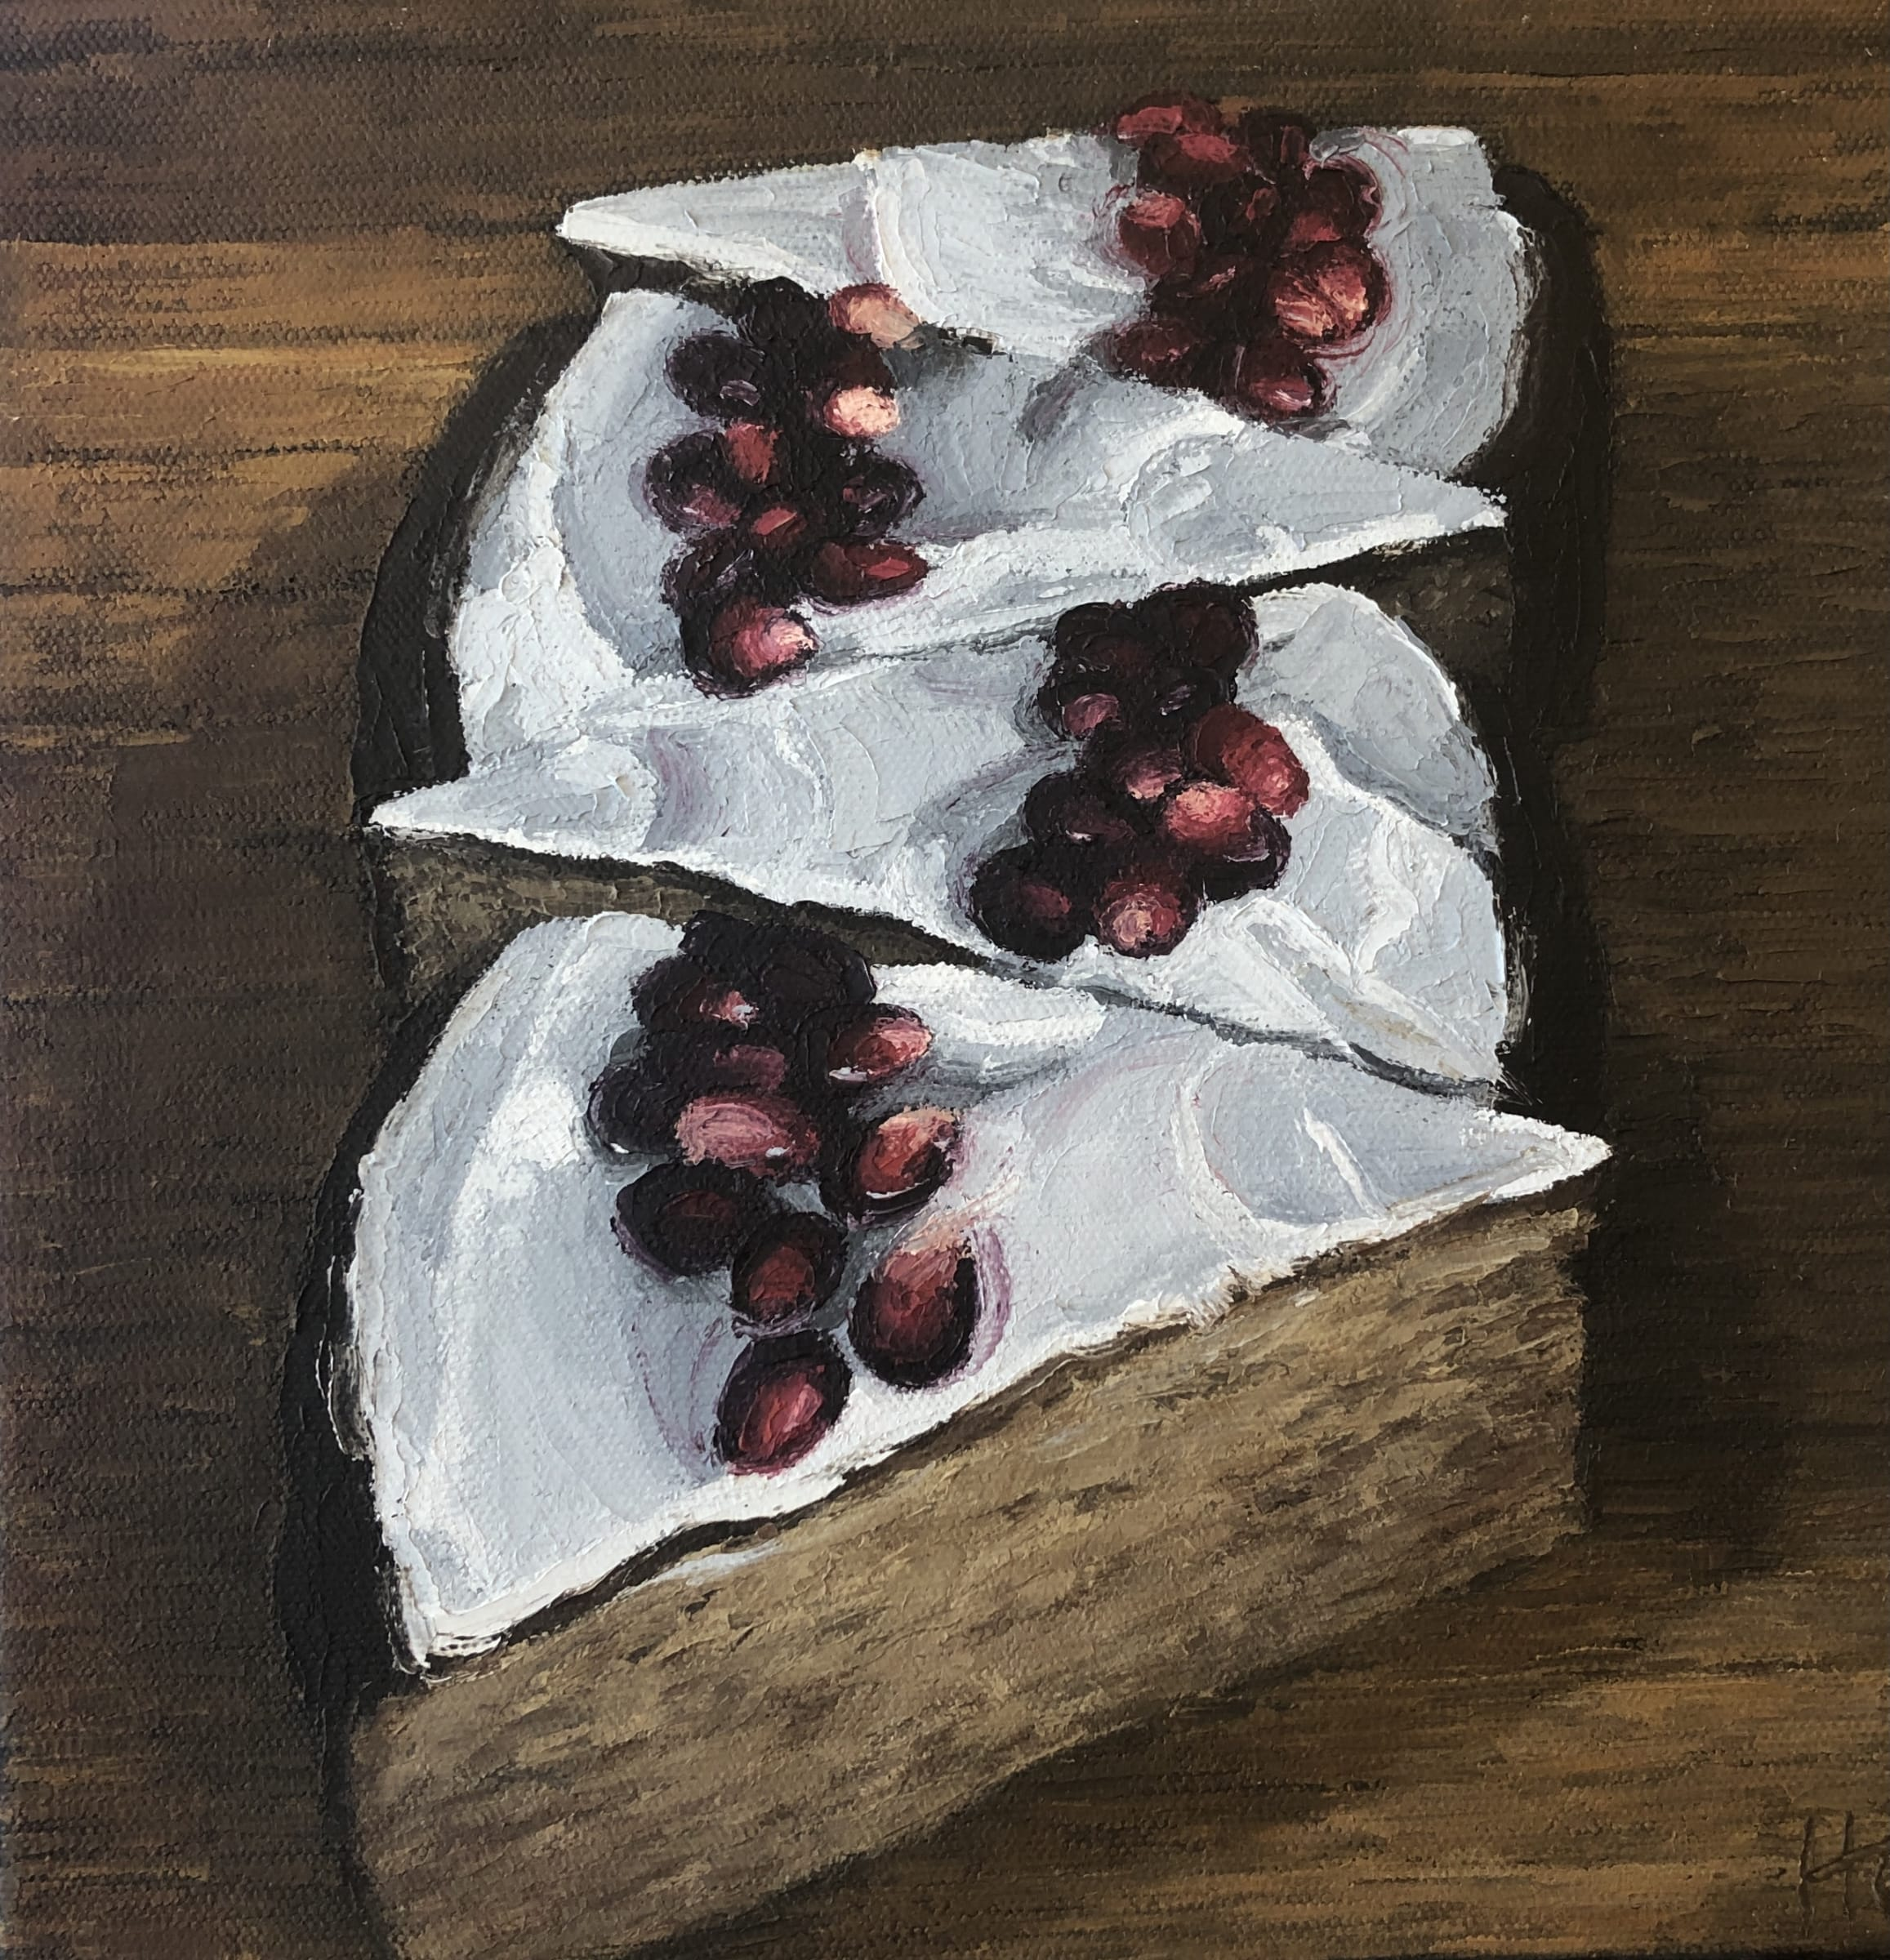 """<span class=""""link fancybox-details-link""""><a href=""""/artists/34-heather-capen/works/1457-heather-capen-rosemary-tea-cakes/"""">View Detail Page</a></span><div class=""""artist""""><strong>Heather Capen</strong></div> <div class=""""title""""><em>Rosemary Tea Cakes</em></div> <div class=""""medium"""">Oil on canvas</div> <div class=""""dimensions"""">10 x 10 inches</div>"""